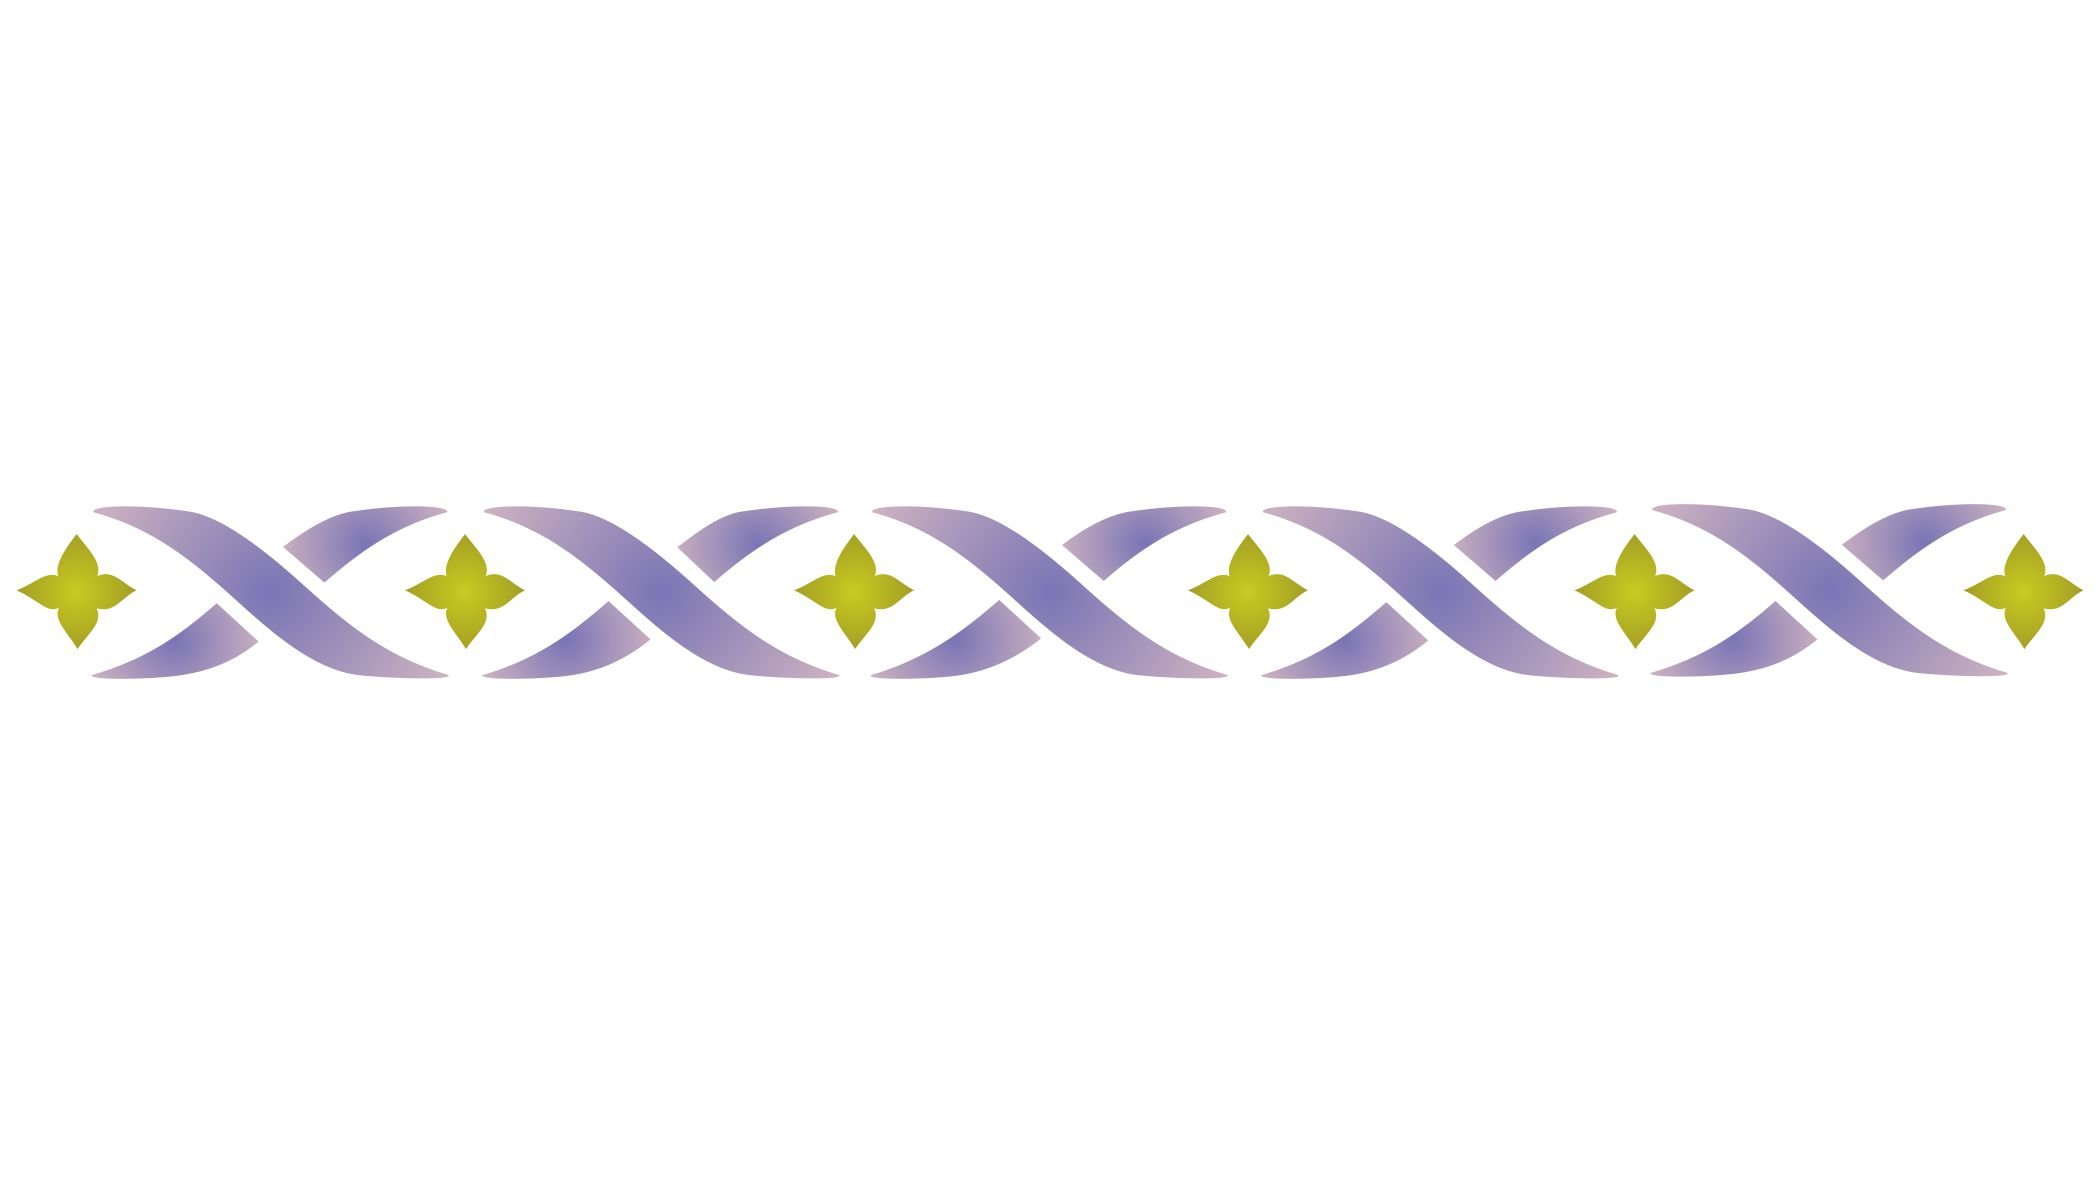 """BORDER Ribbon Stencil - (size 12""""w x 1.25""""h) Reusable Wall Stencils for Painting - Best Quality Wall Art Décor Ideas - Use on Walls, Floors, Fabrics, Glass, Wood, Terracotta, and More…"""